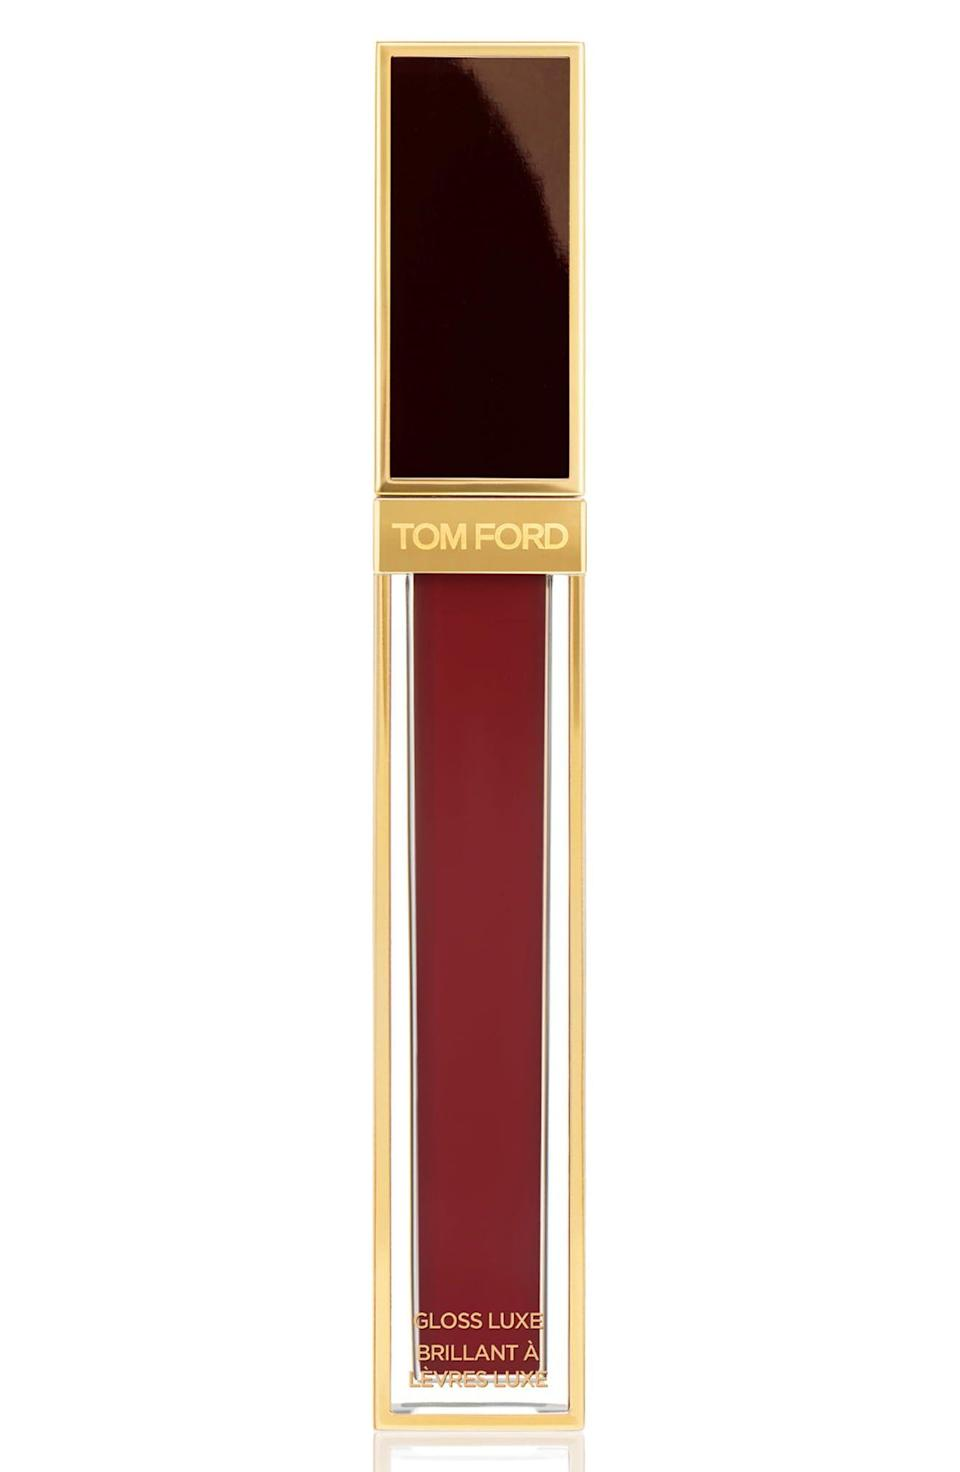 """<p><strong>TOM FORD</strong></p><p>nordstrom.com</p><p><a href=""""https://go.redirectingat.com?id=74968X1596630&url=https%3A%2F%2Fwww.nordstrom.com%2Fs%2Ftom-ford-gloss-luxe-moisturizing-lipgloss%2F5392450&sref=https%3A%2F%2Fwww.elle.com%2Fbeauty%2Fg35951728%2Fnordstrom-beauty-sale%2F"""" rel=""""nofollow noopener"""" target=""""_blank"""" data-ylk=""""slk:Shop Now"""" class=""""link rapid-noclick-resp"""">Shop Now</a></p><p><strong><del>$56</del> $47.60 (15% off) </strong></p>"""